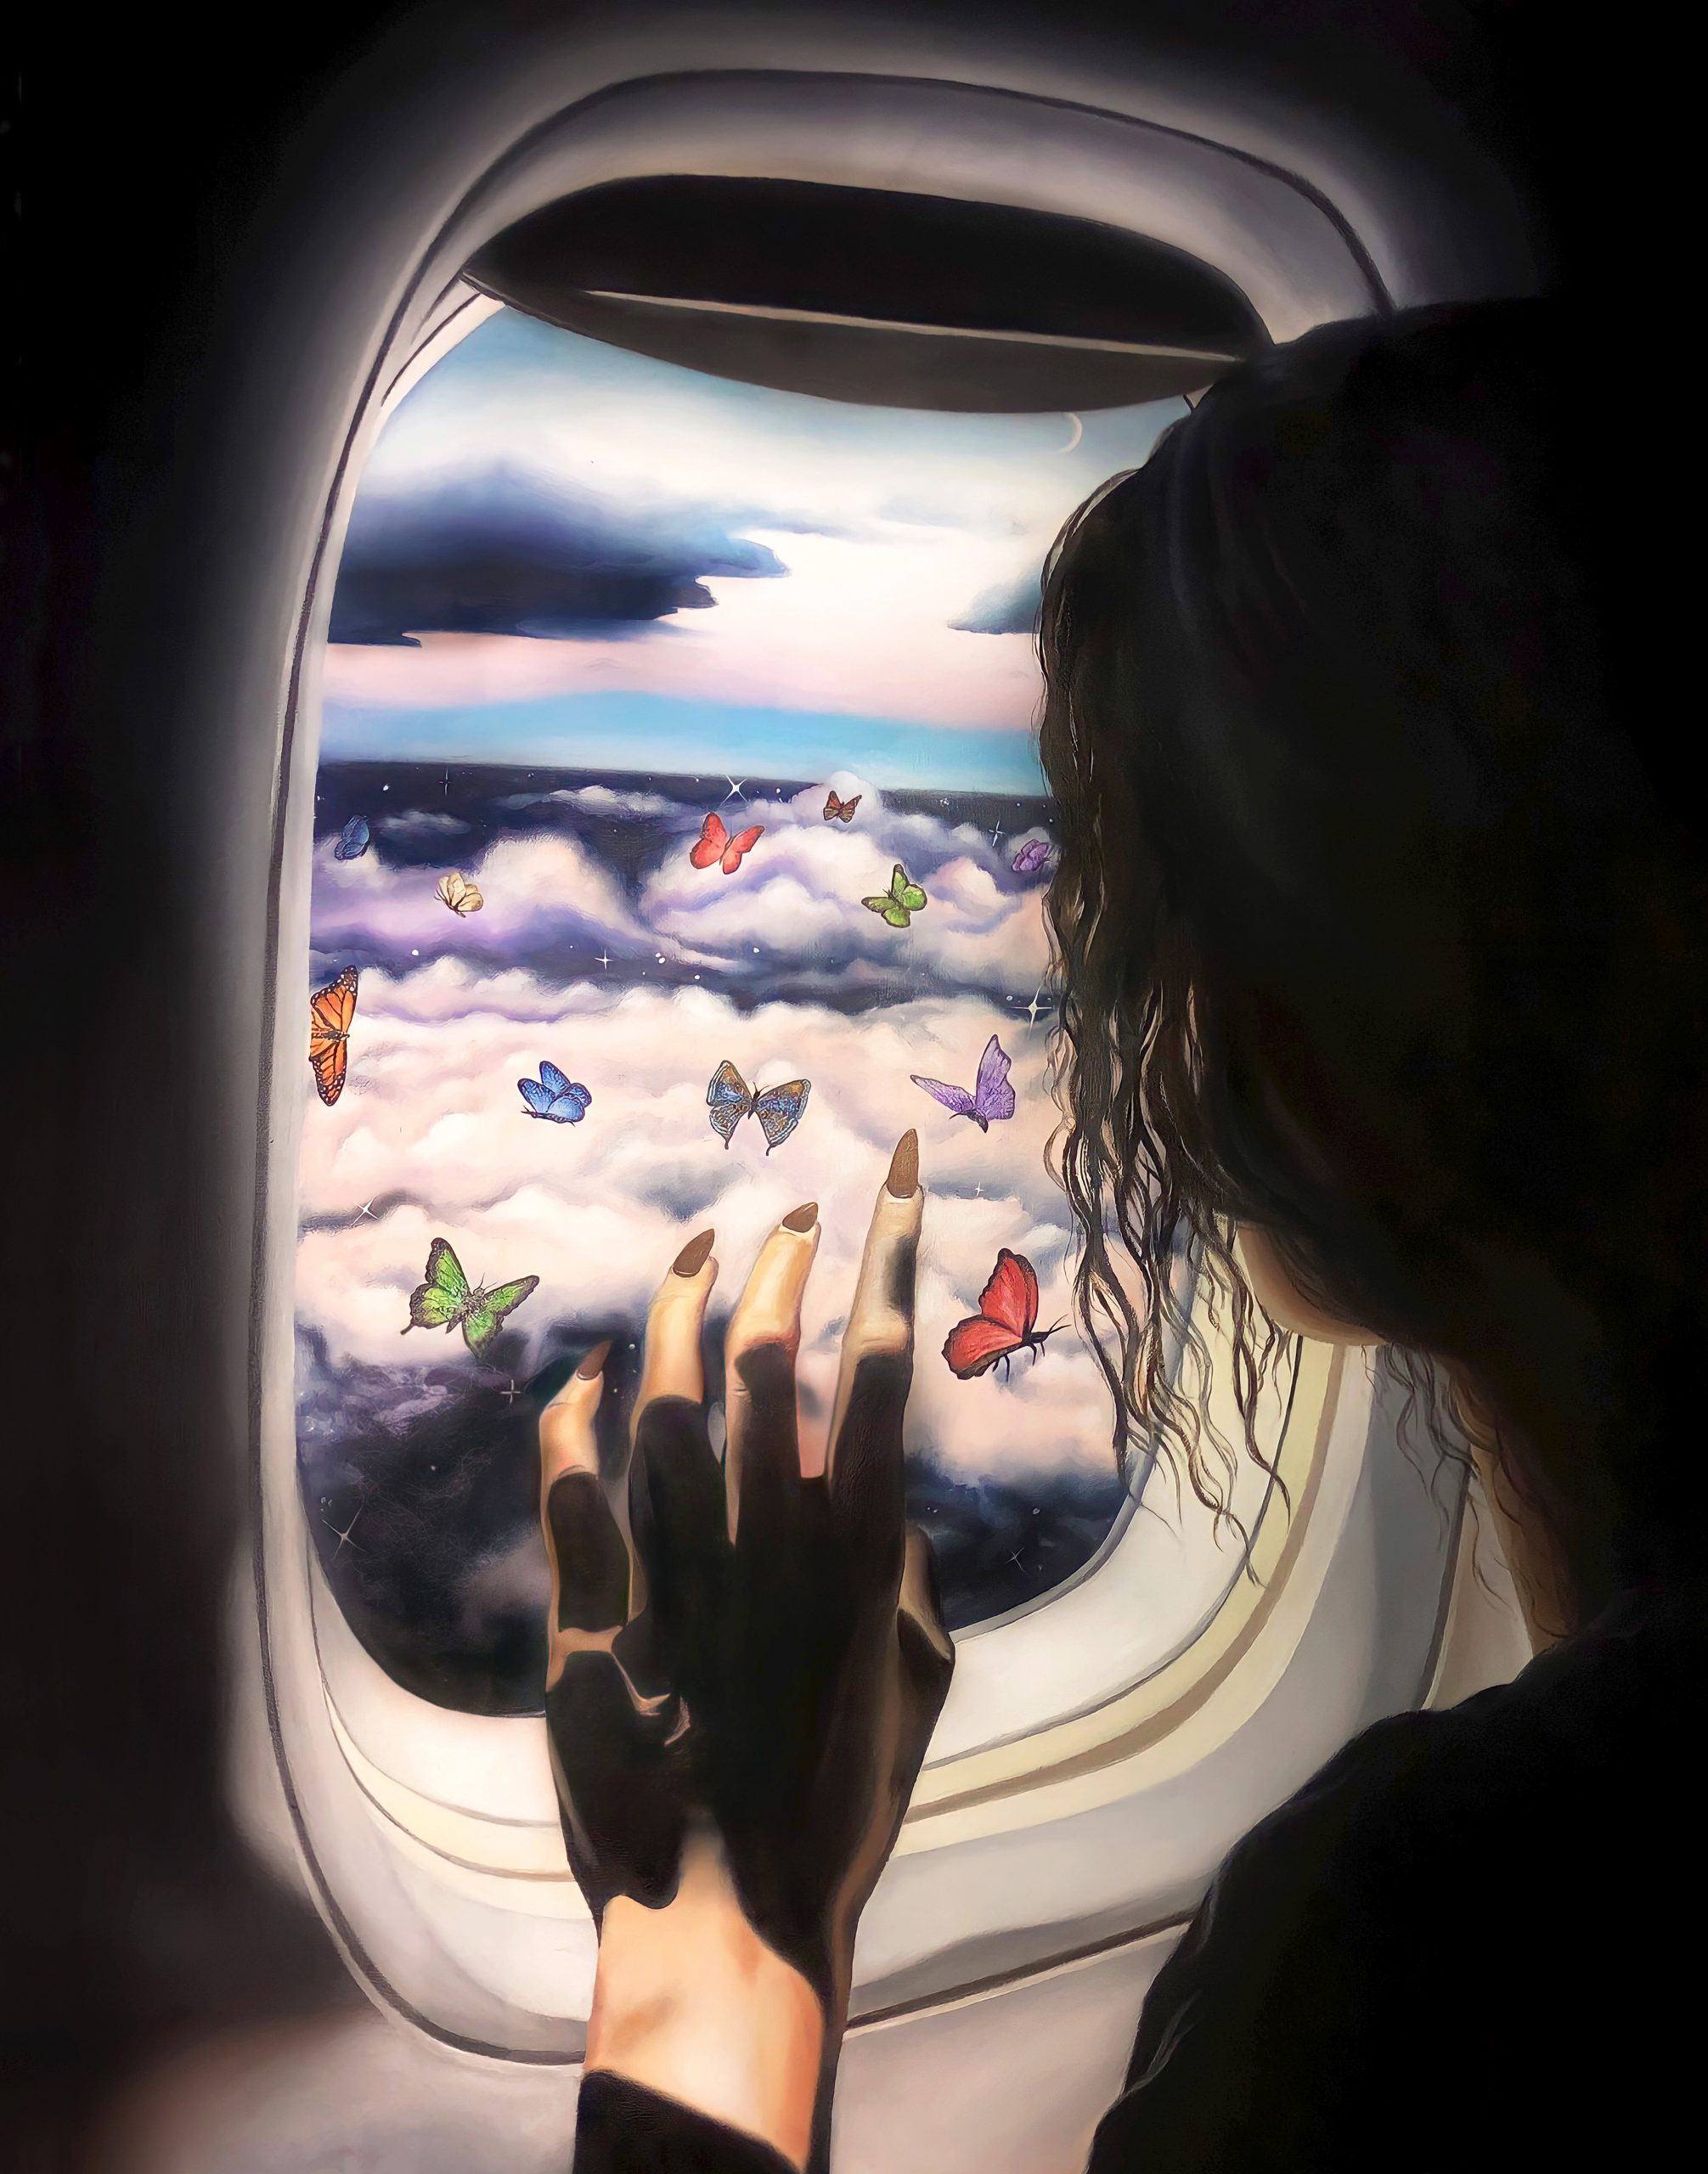 Painting of a woman staring out of an airplane window with butterflies outside